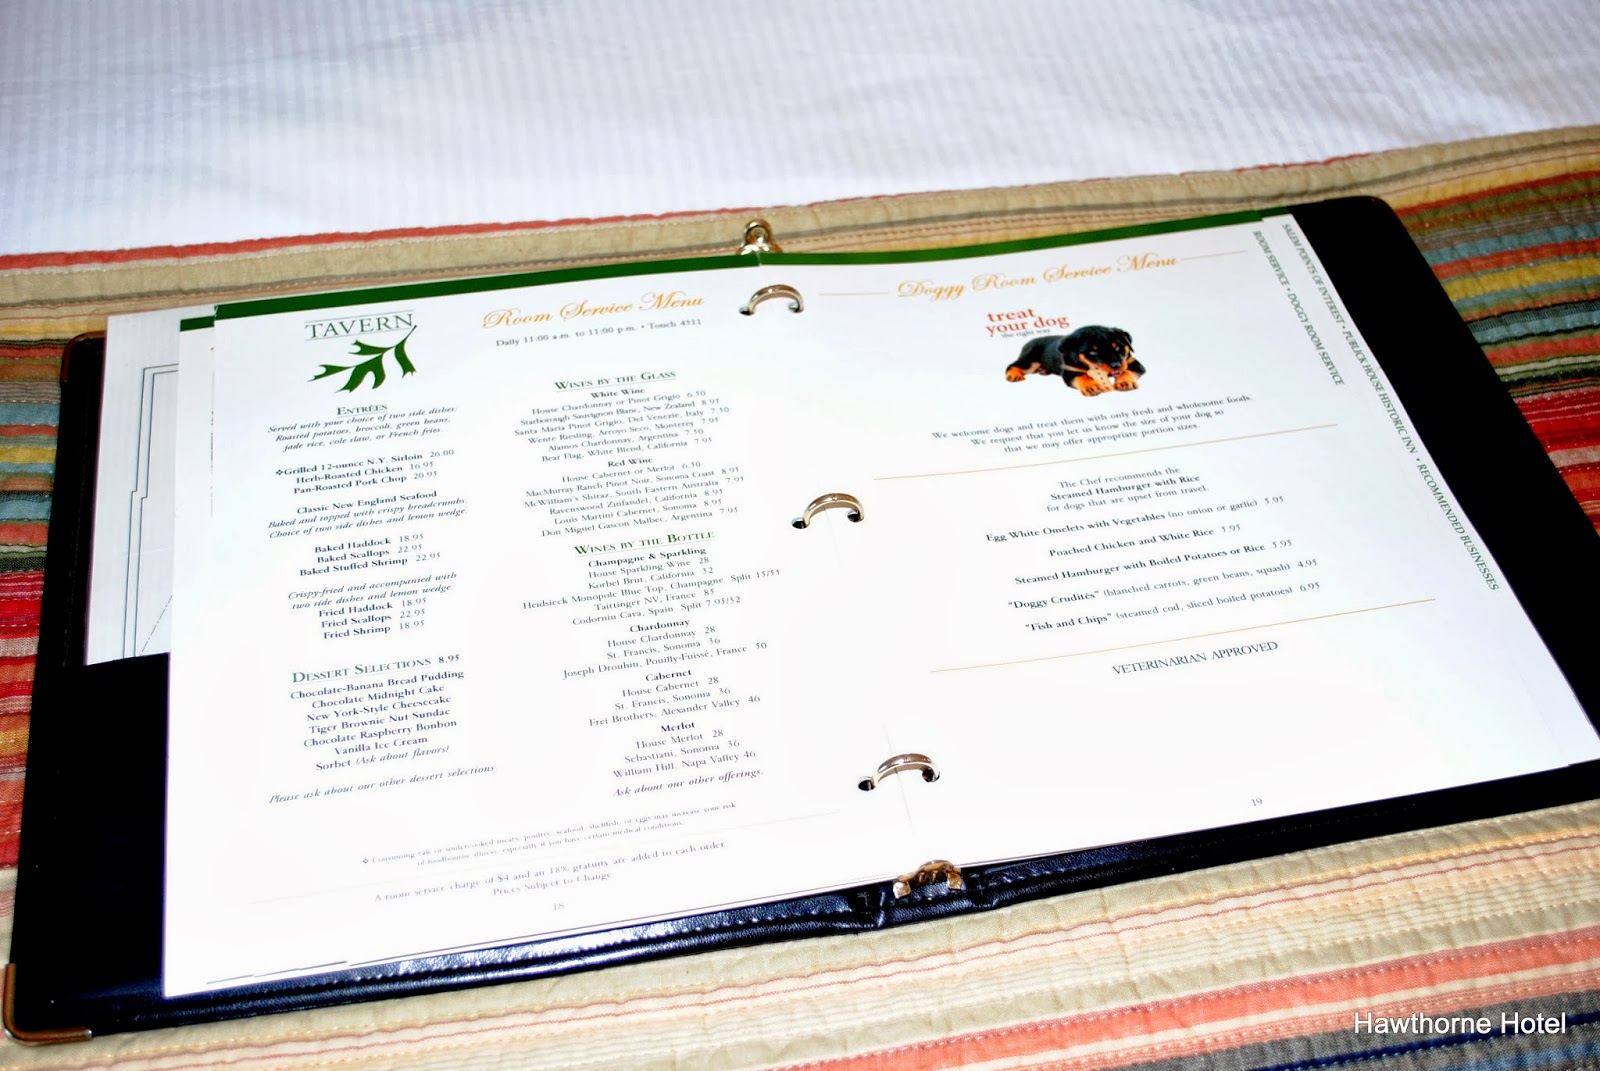 More unusual is the fact that we have two copies of this directory available in braille for our guests who might need that format